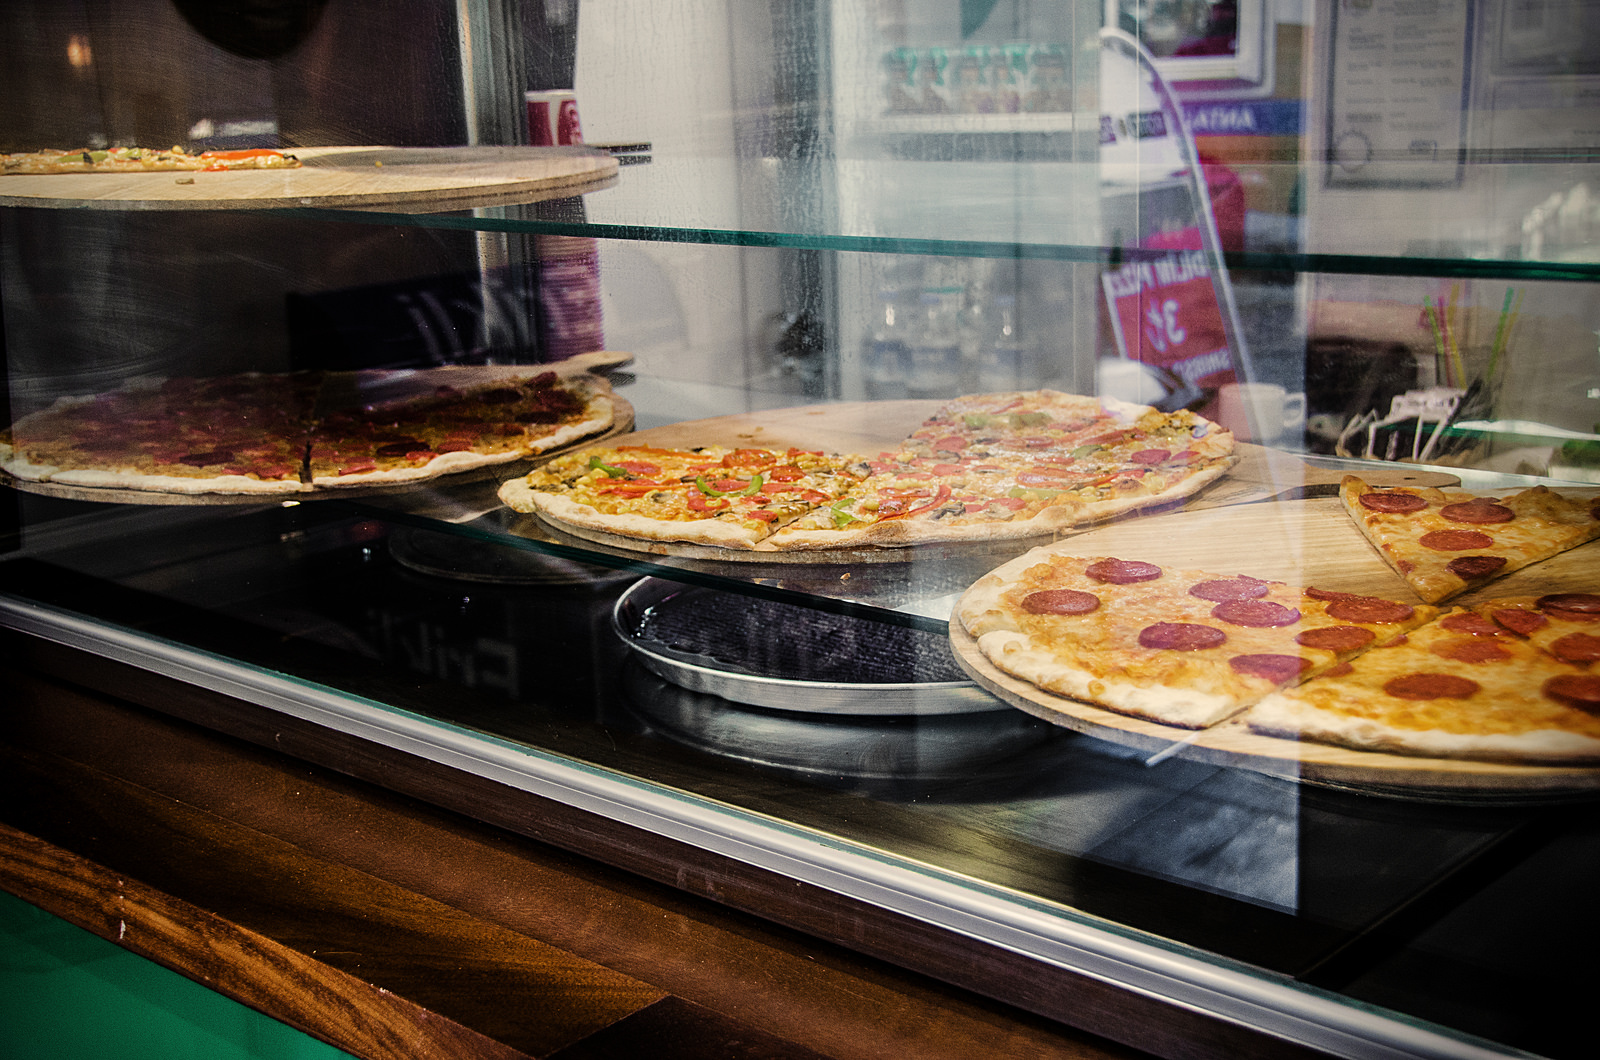 A photo of pizzas on platters in a display window.